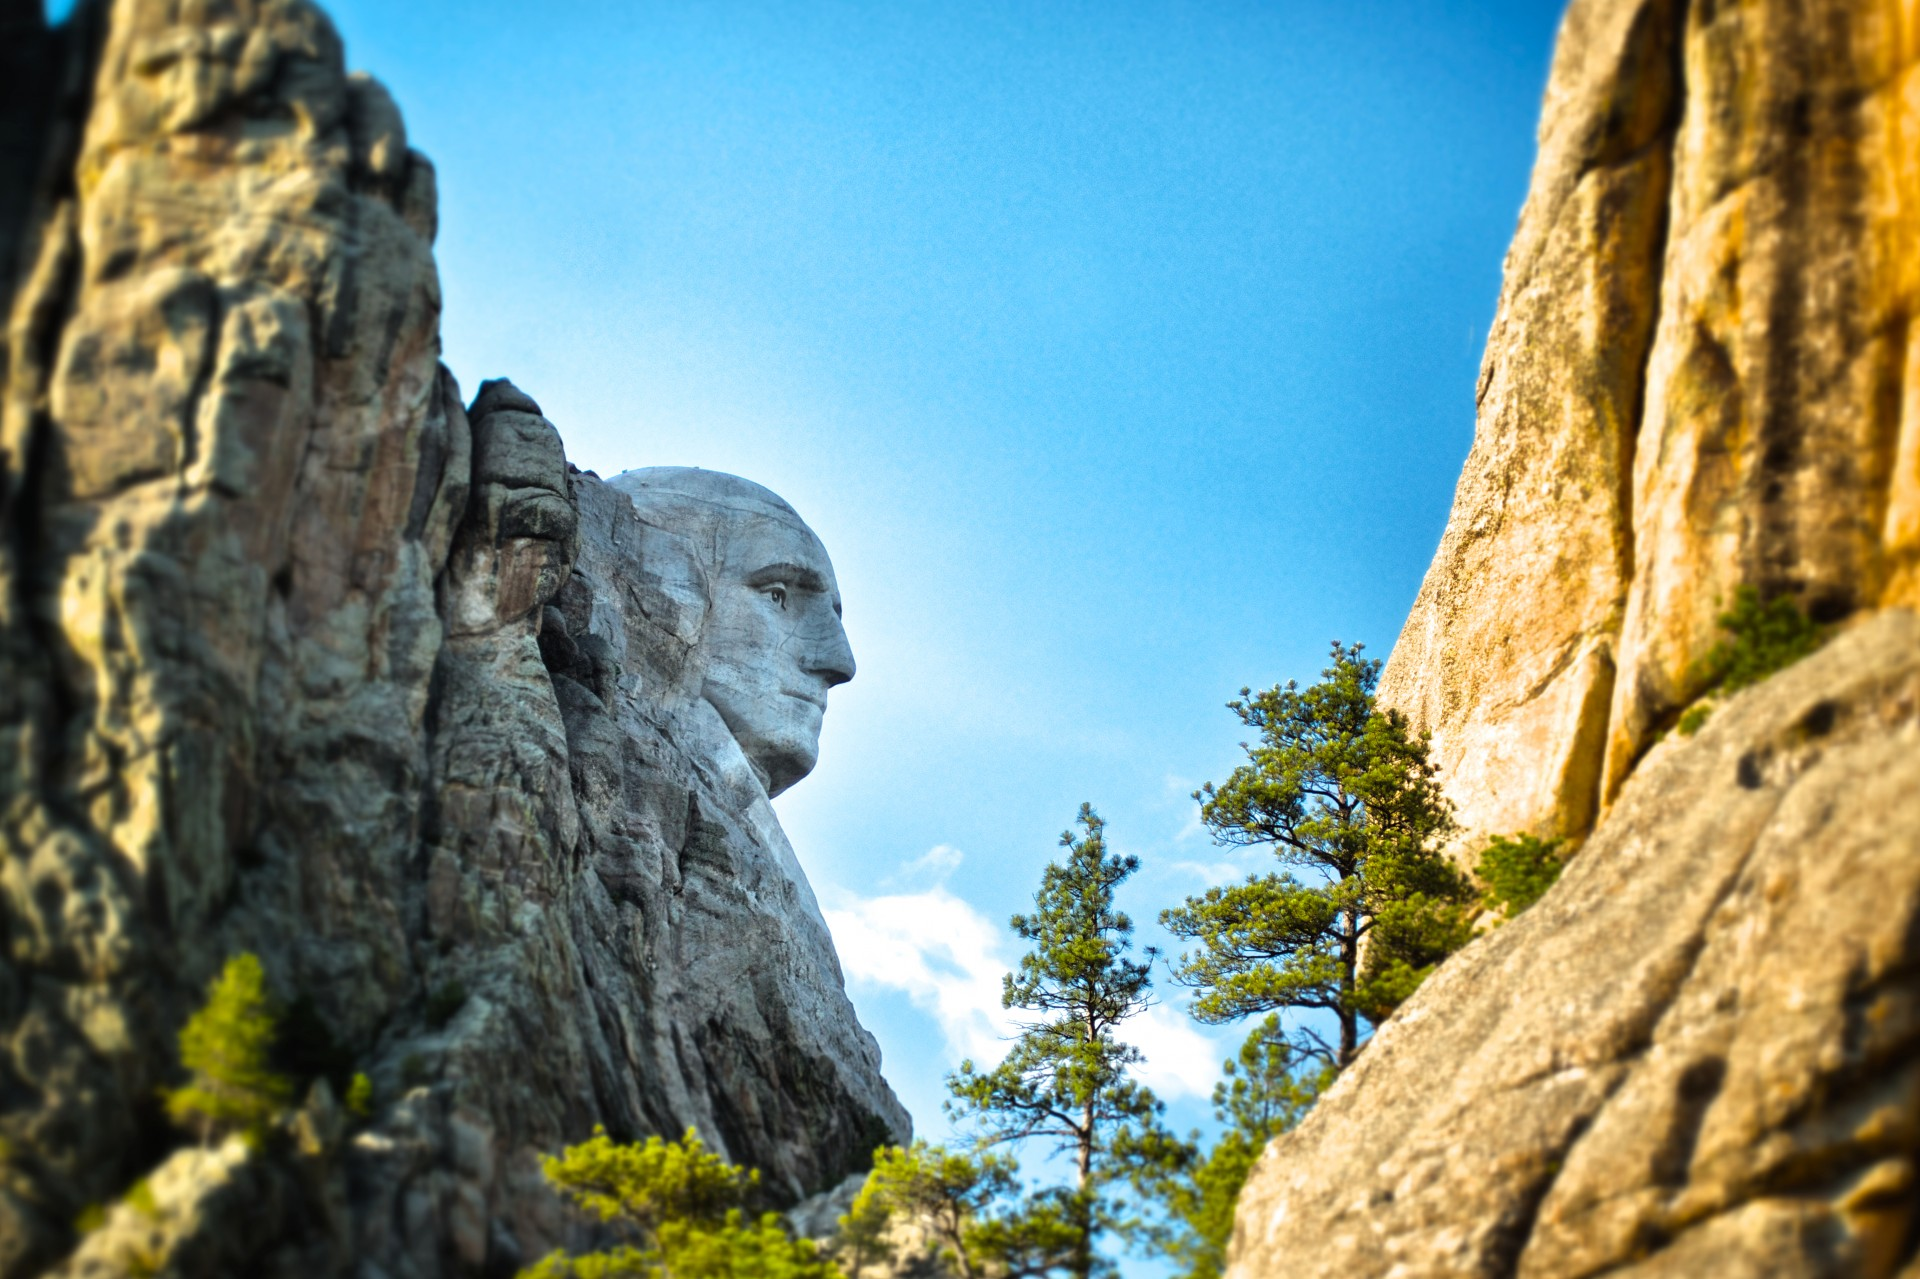 The Best Time To Visit Mount Rushmore National Memorial